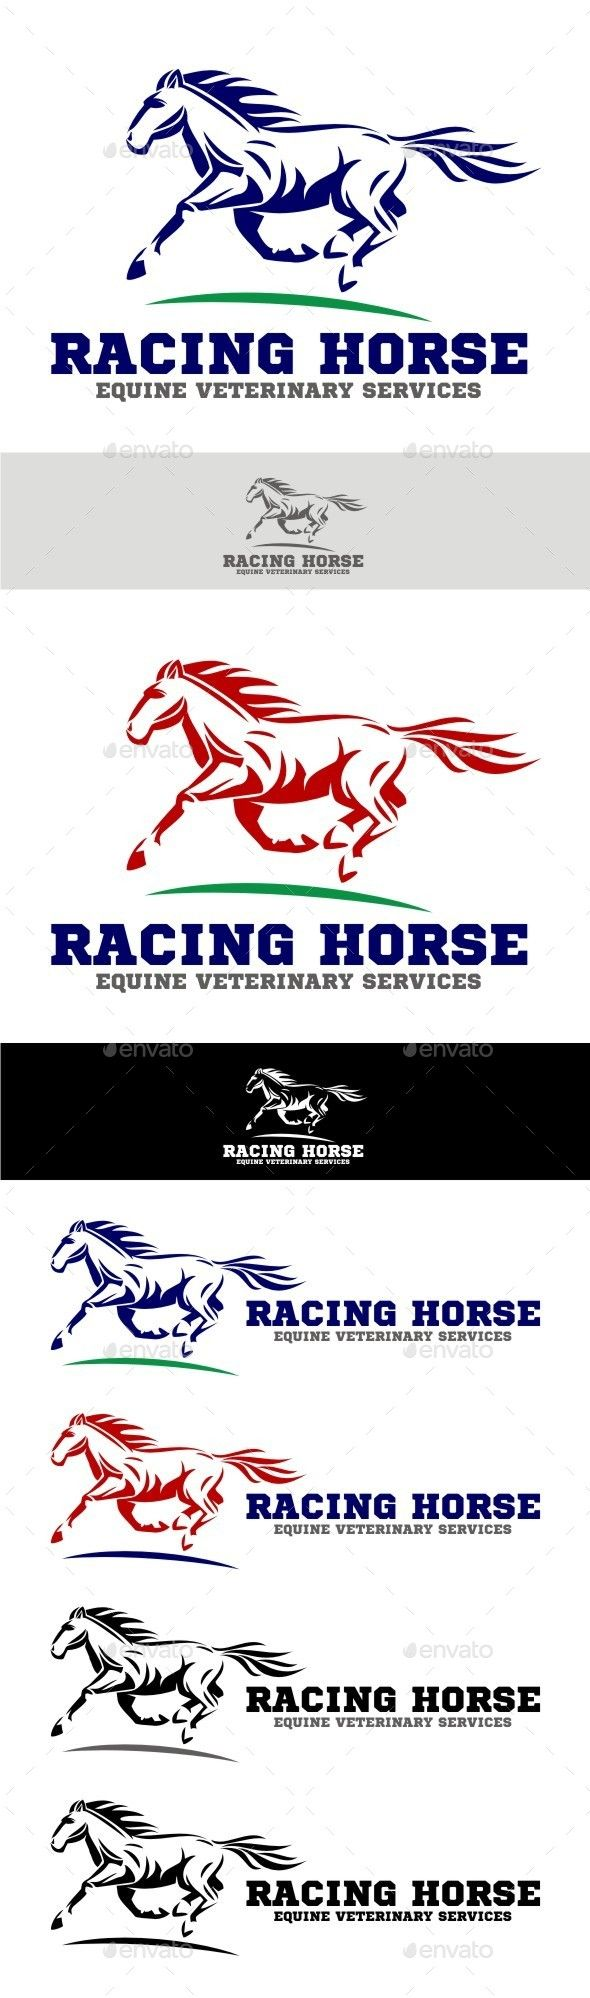 Racing Horses Equine Veterinary Services